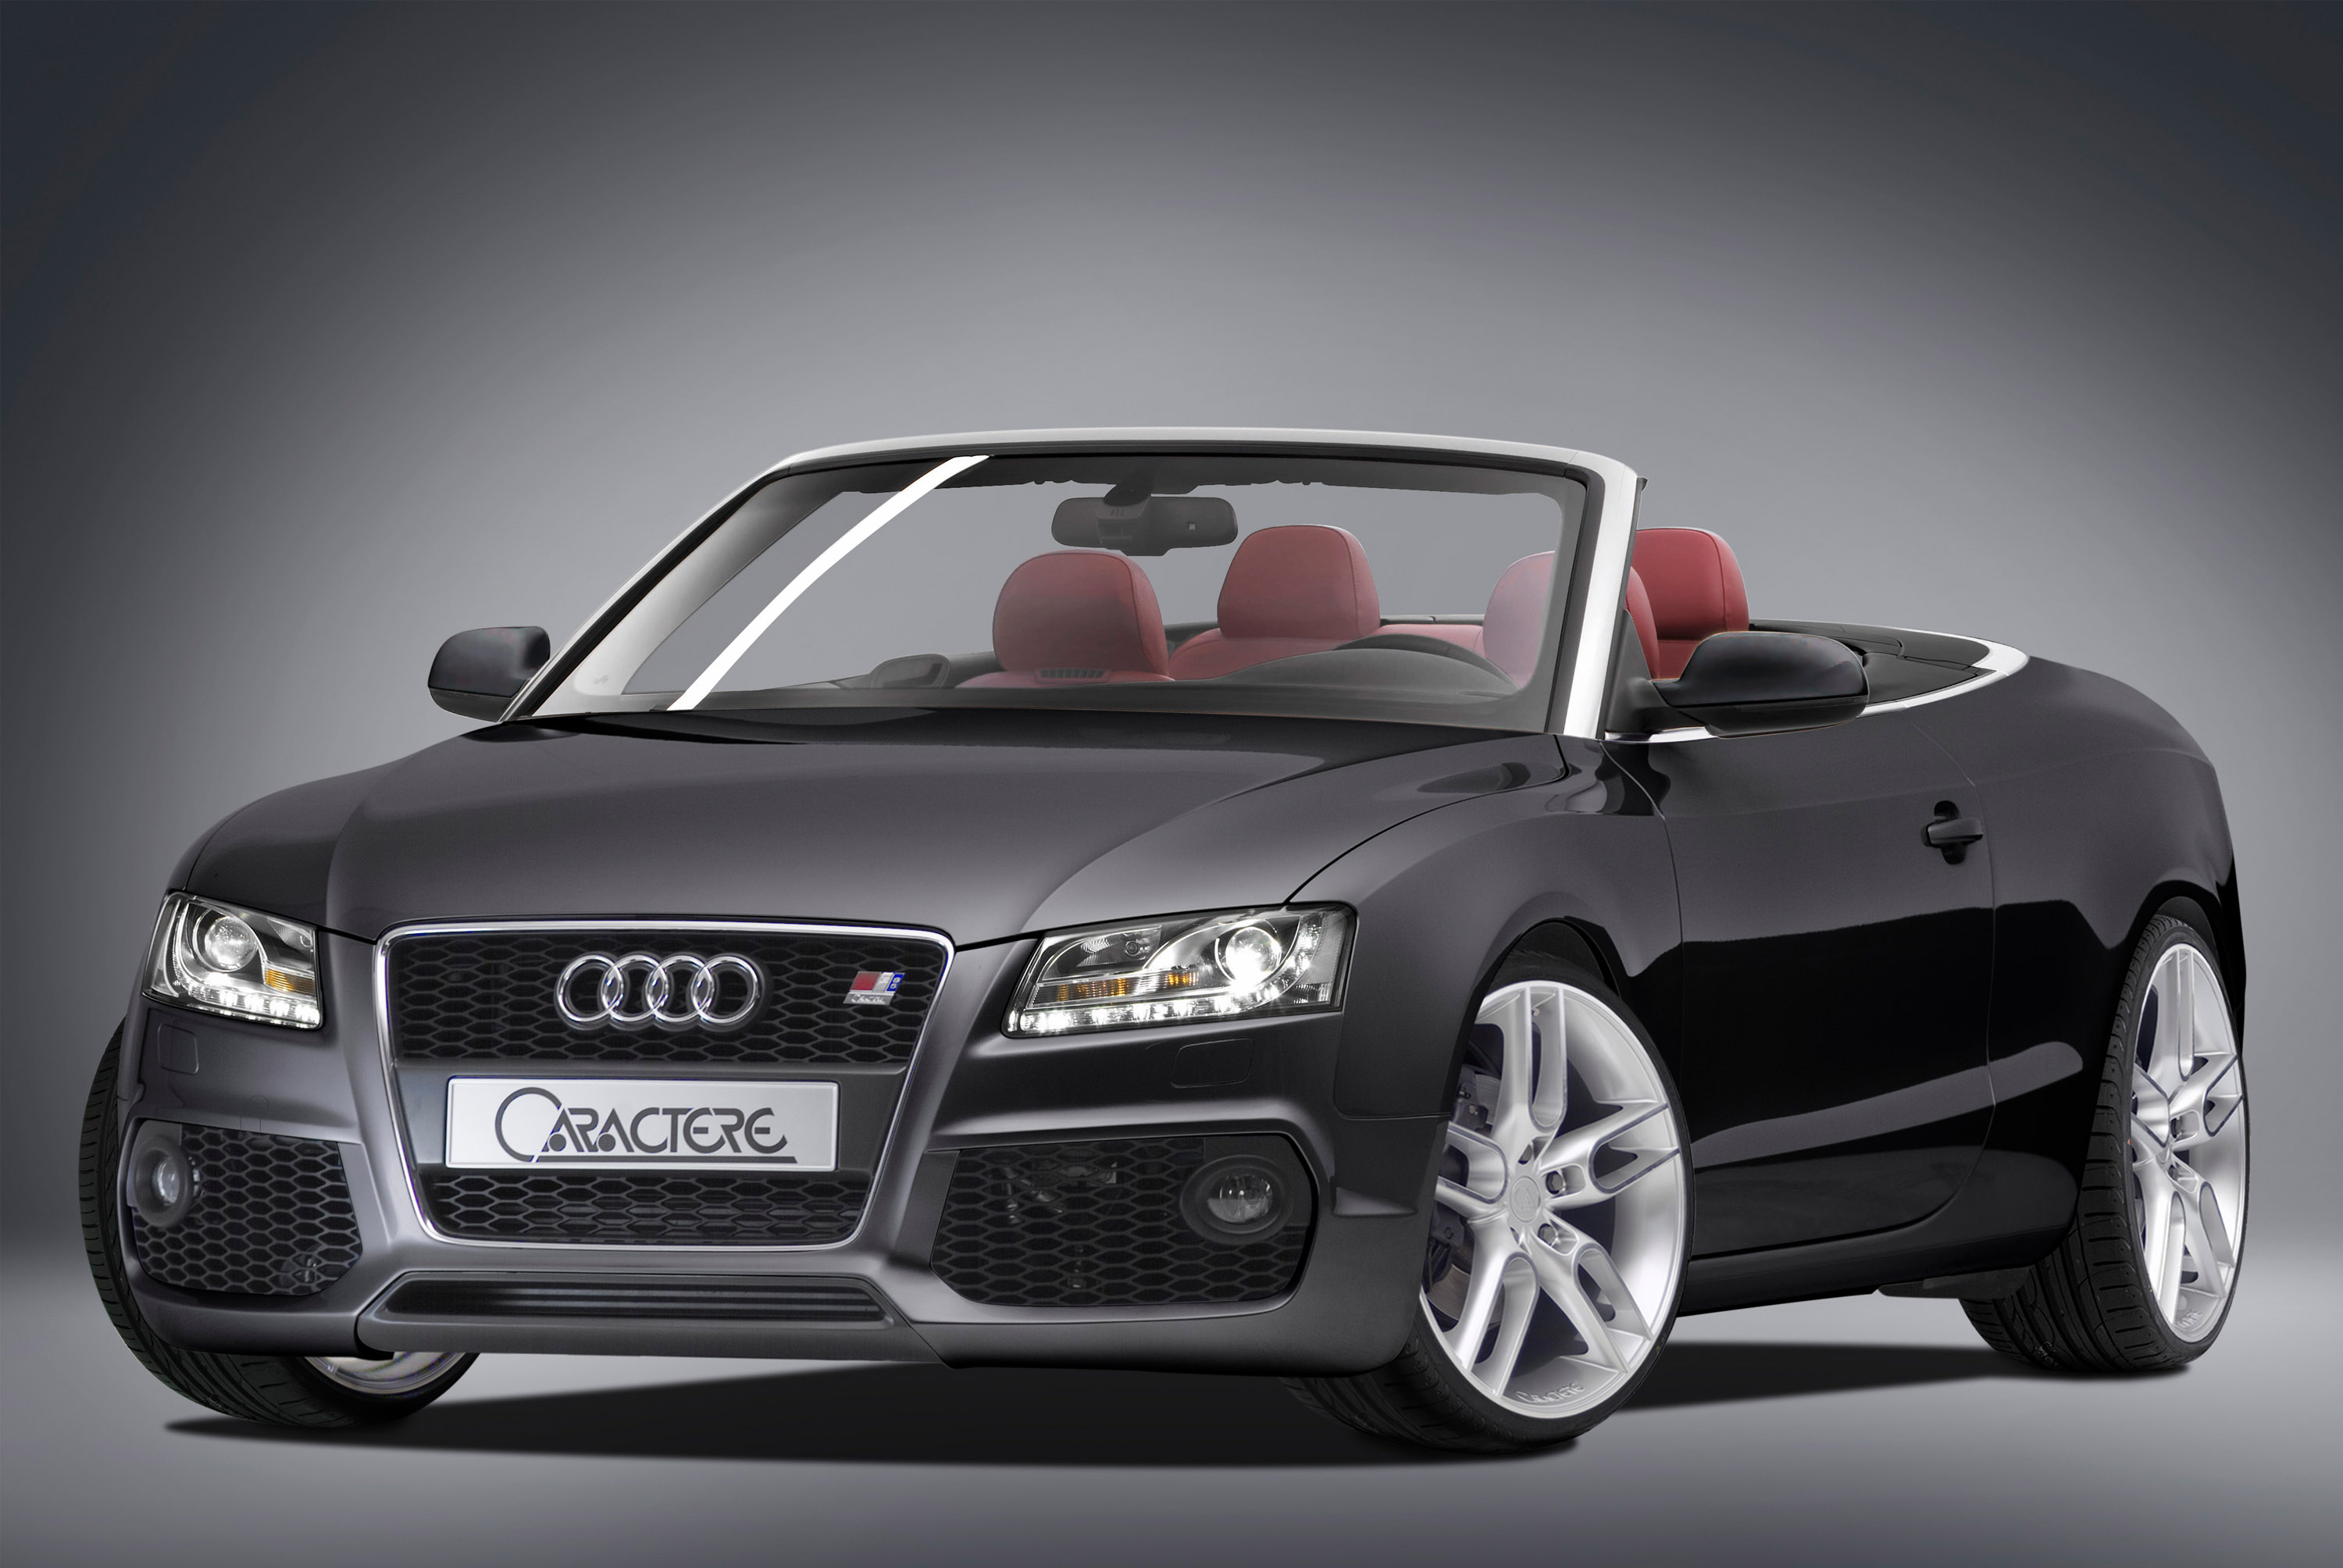 for them available audi financing auto mikano easy at vehicle call sale inventory great coupe sales